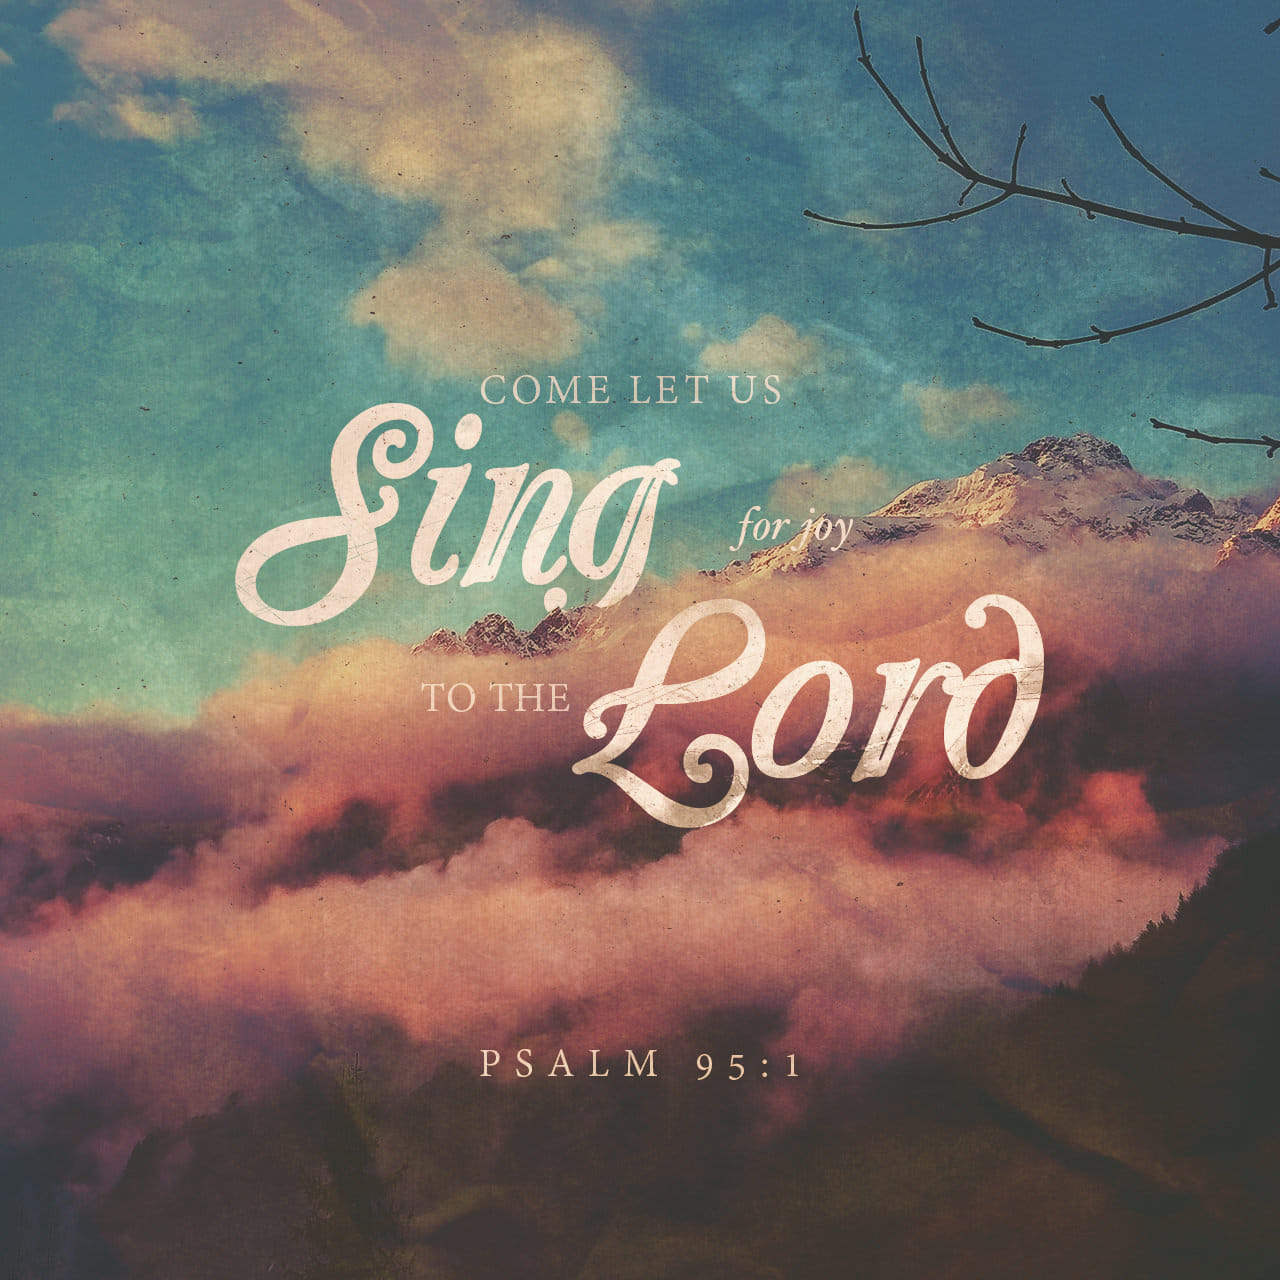 Word Picture of Psalm 95:1